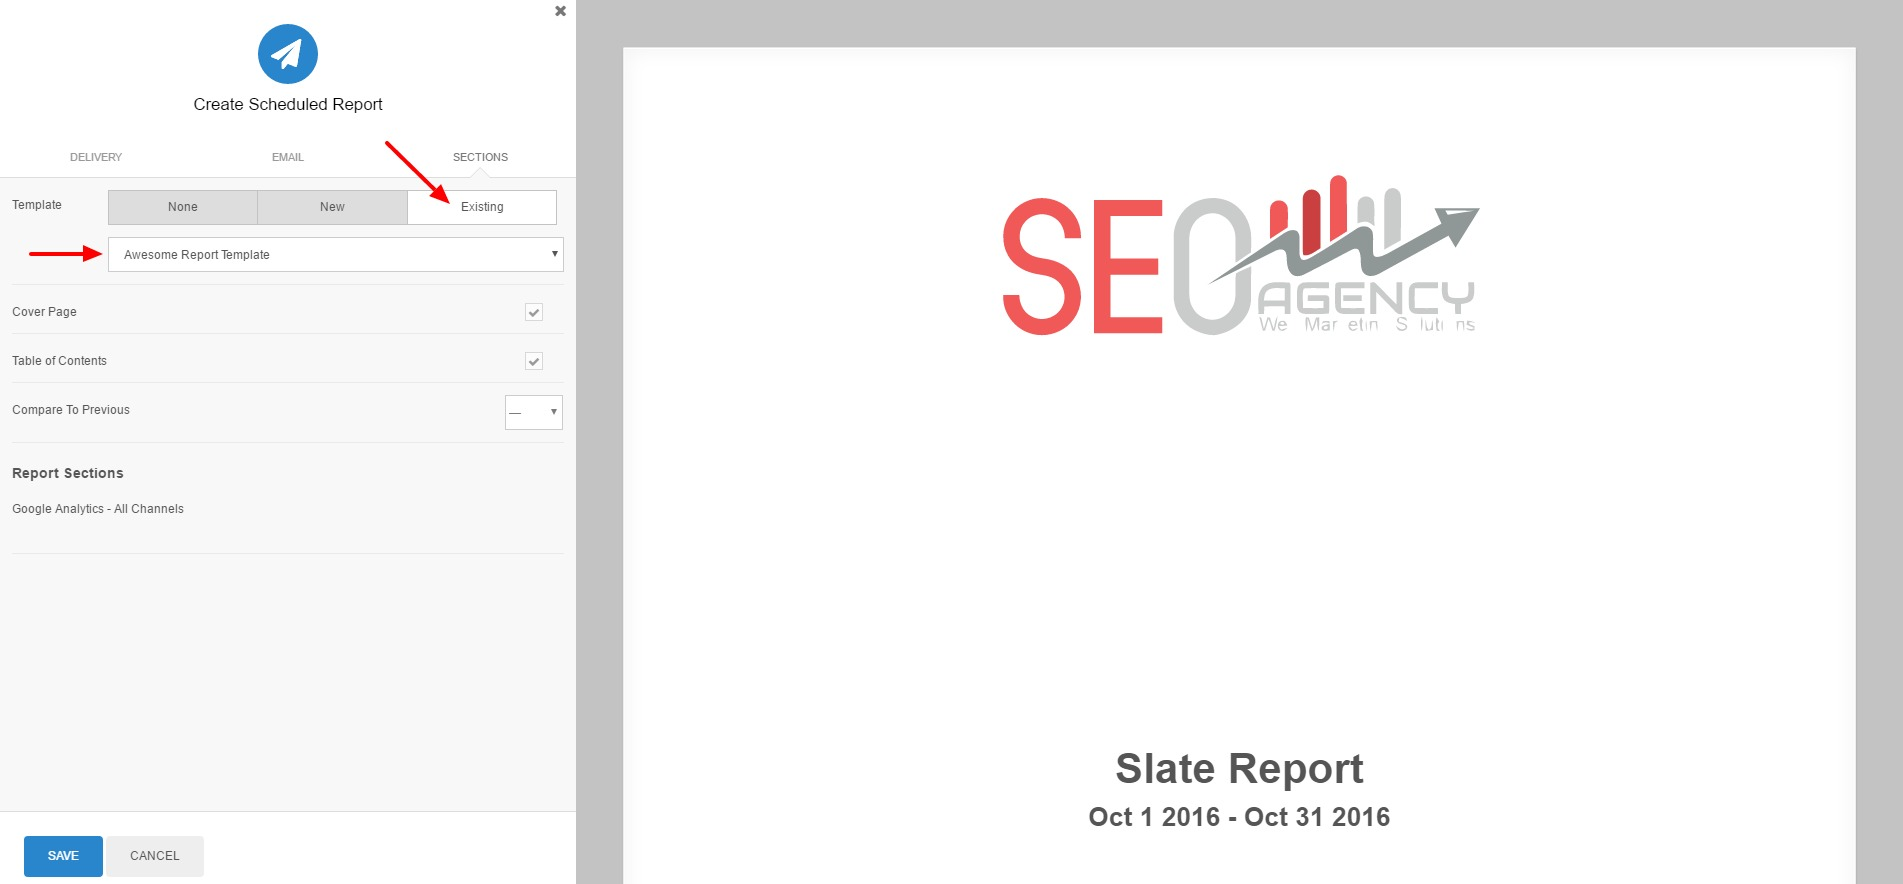 Create report templates – A Report Template